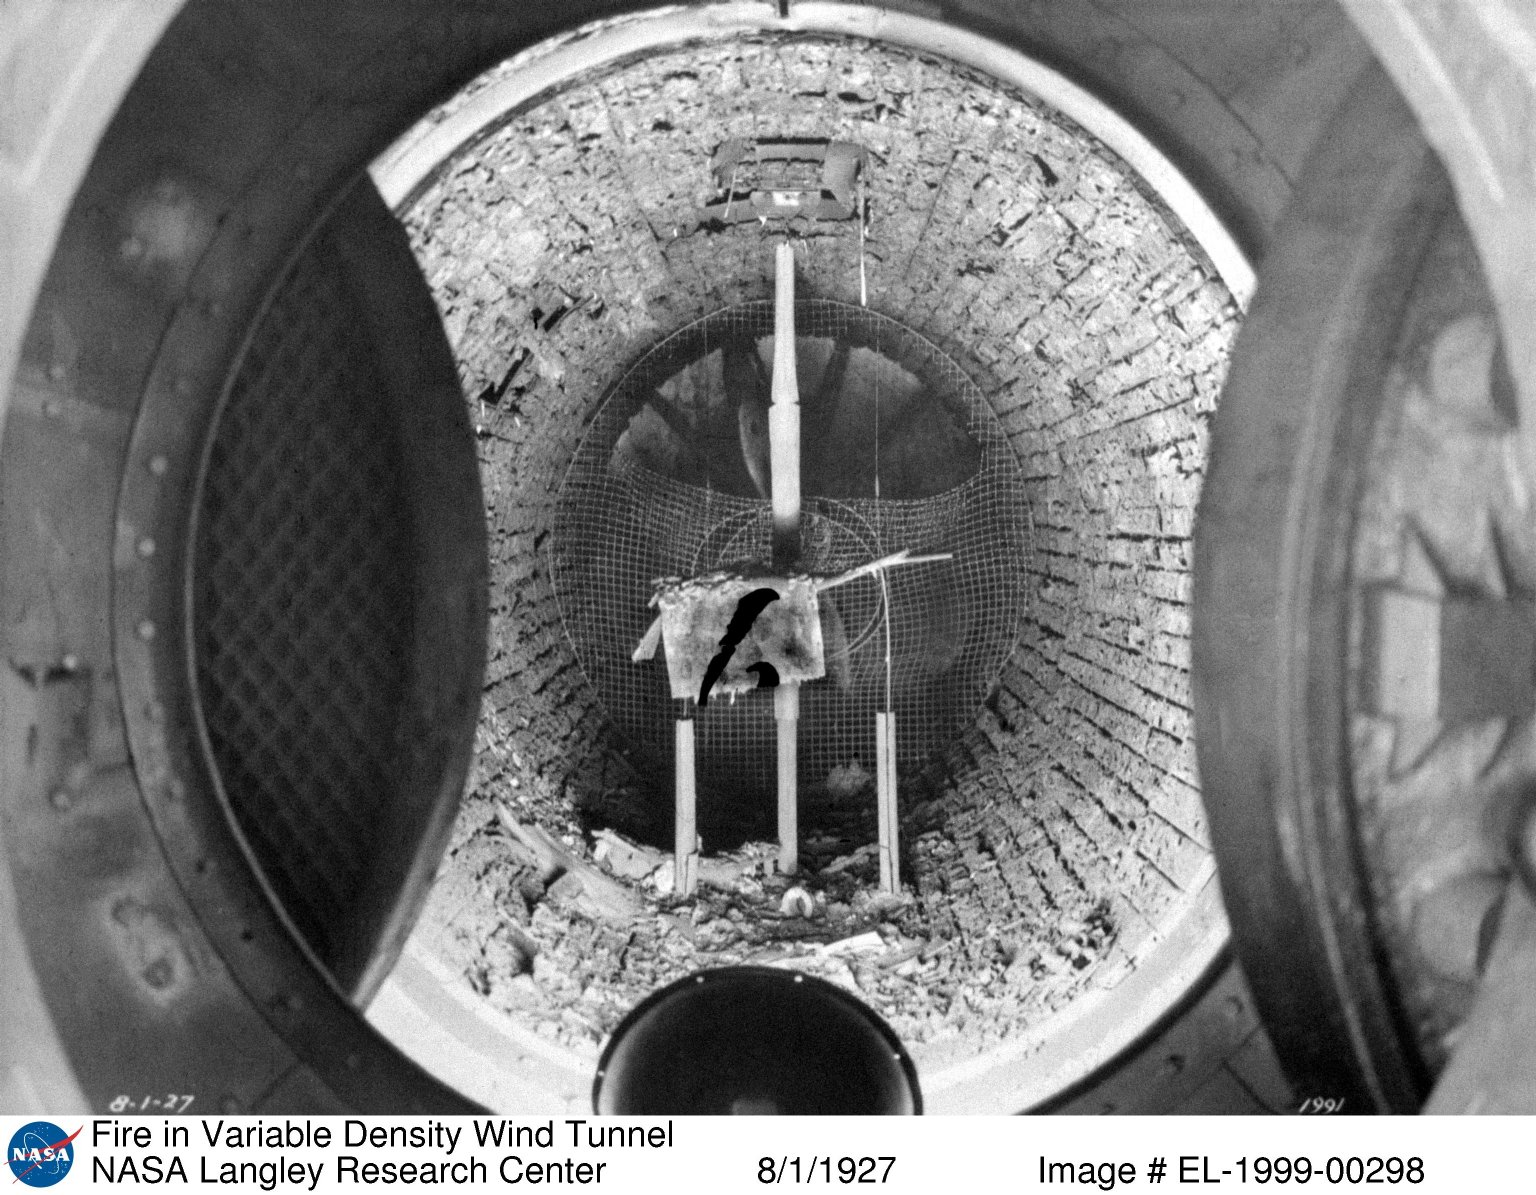 Fire in Variable Density Wind Tunnel